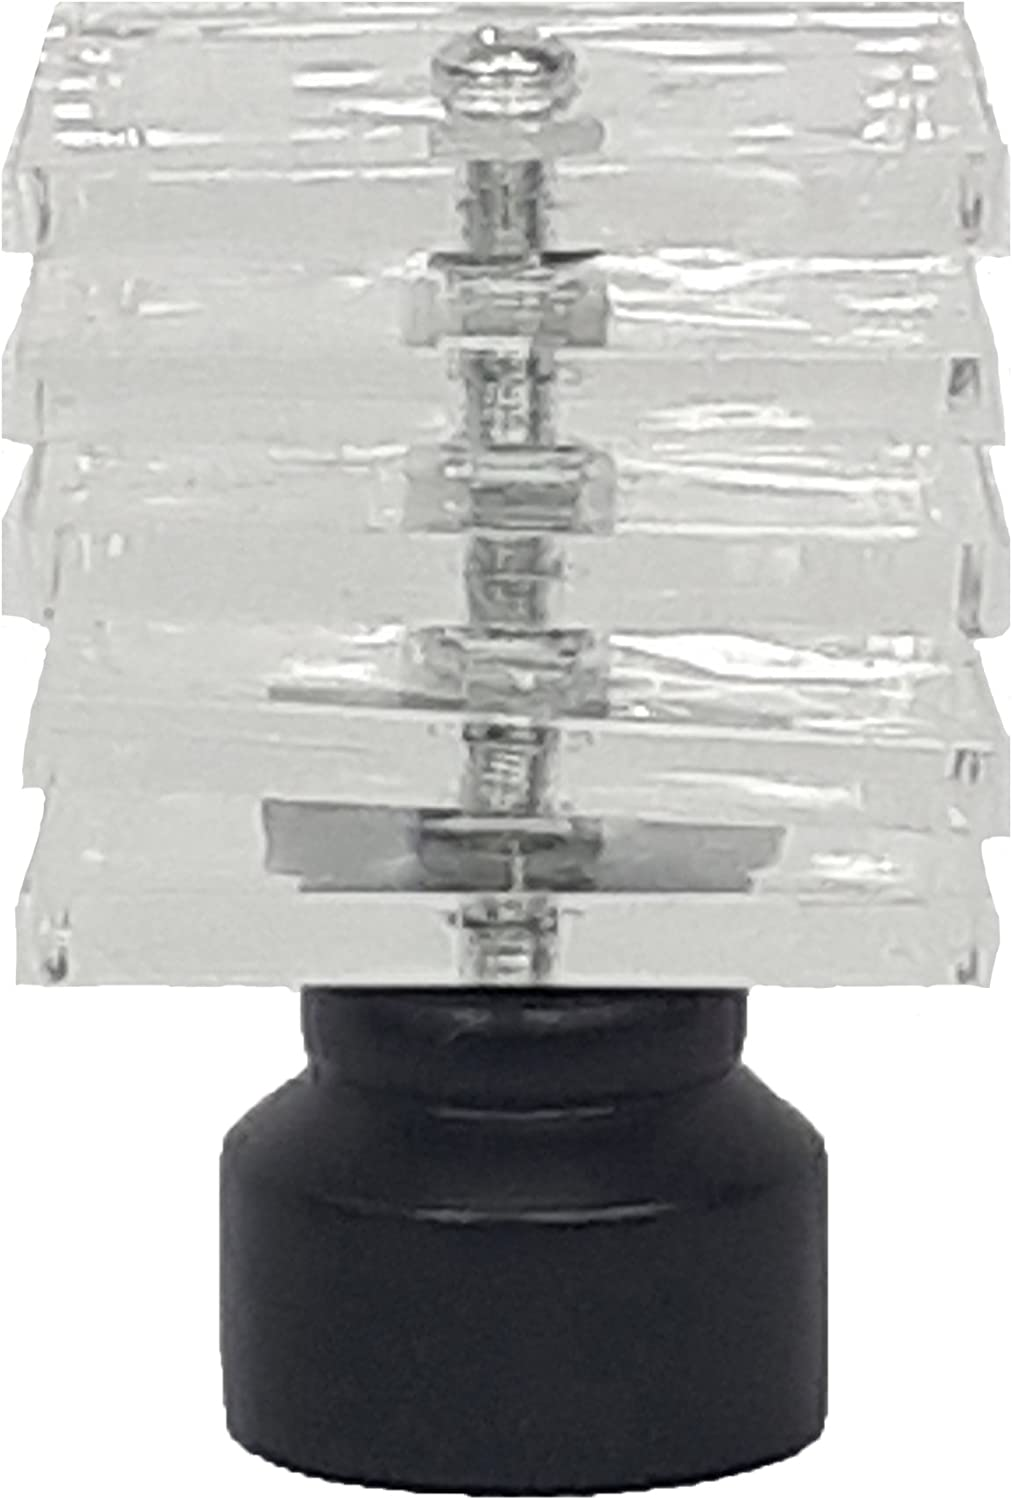 Harmony Home 28mm Curtain Pole Ends Finials Pack Of 2 Available in Silver and Black Silver, Ball